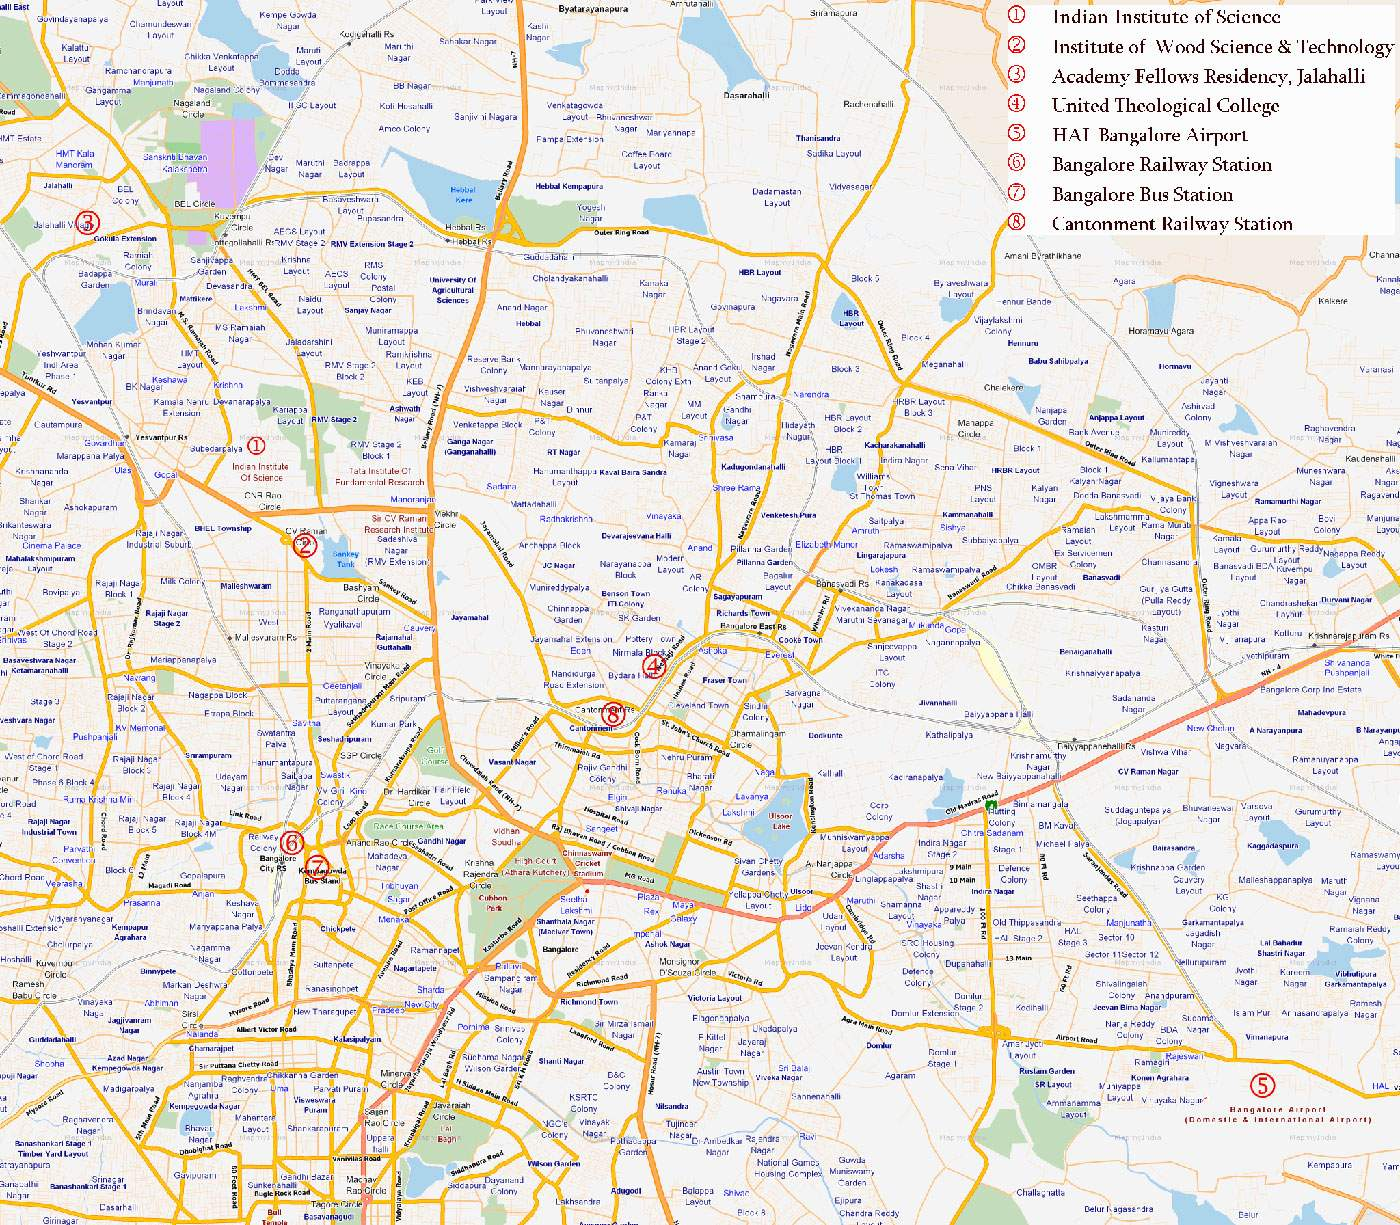 Large bangalore maps for free download and print high resolution large map of bangalore 1 gumiabroncs Images